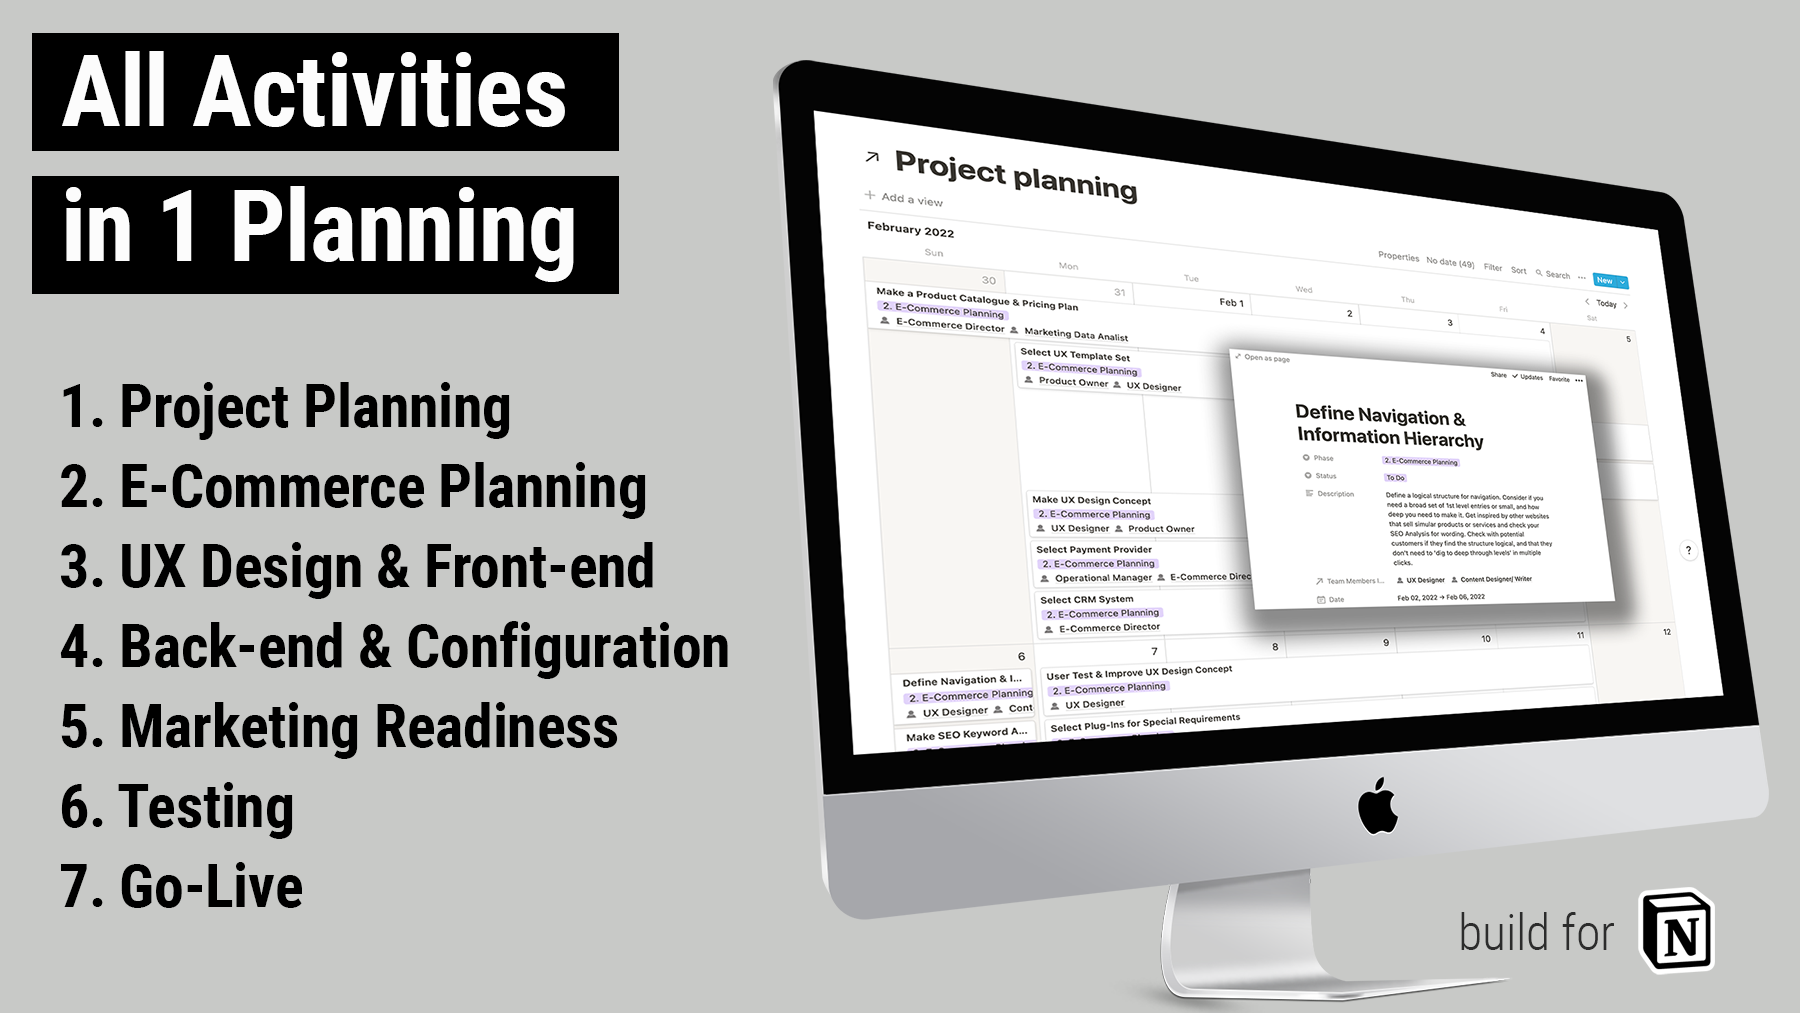 Pre-filled Project Plan to kick-start your E-Commerce Webshop